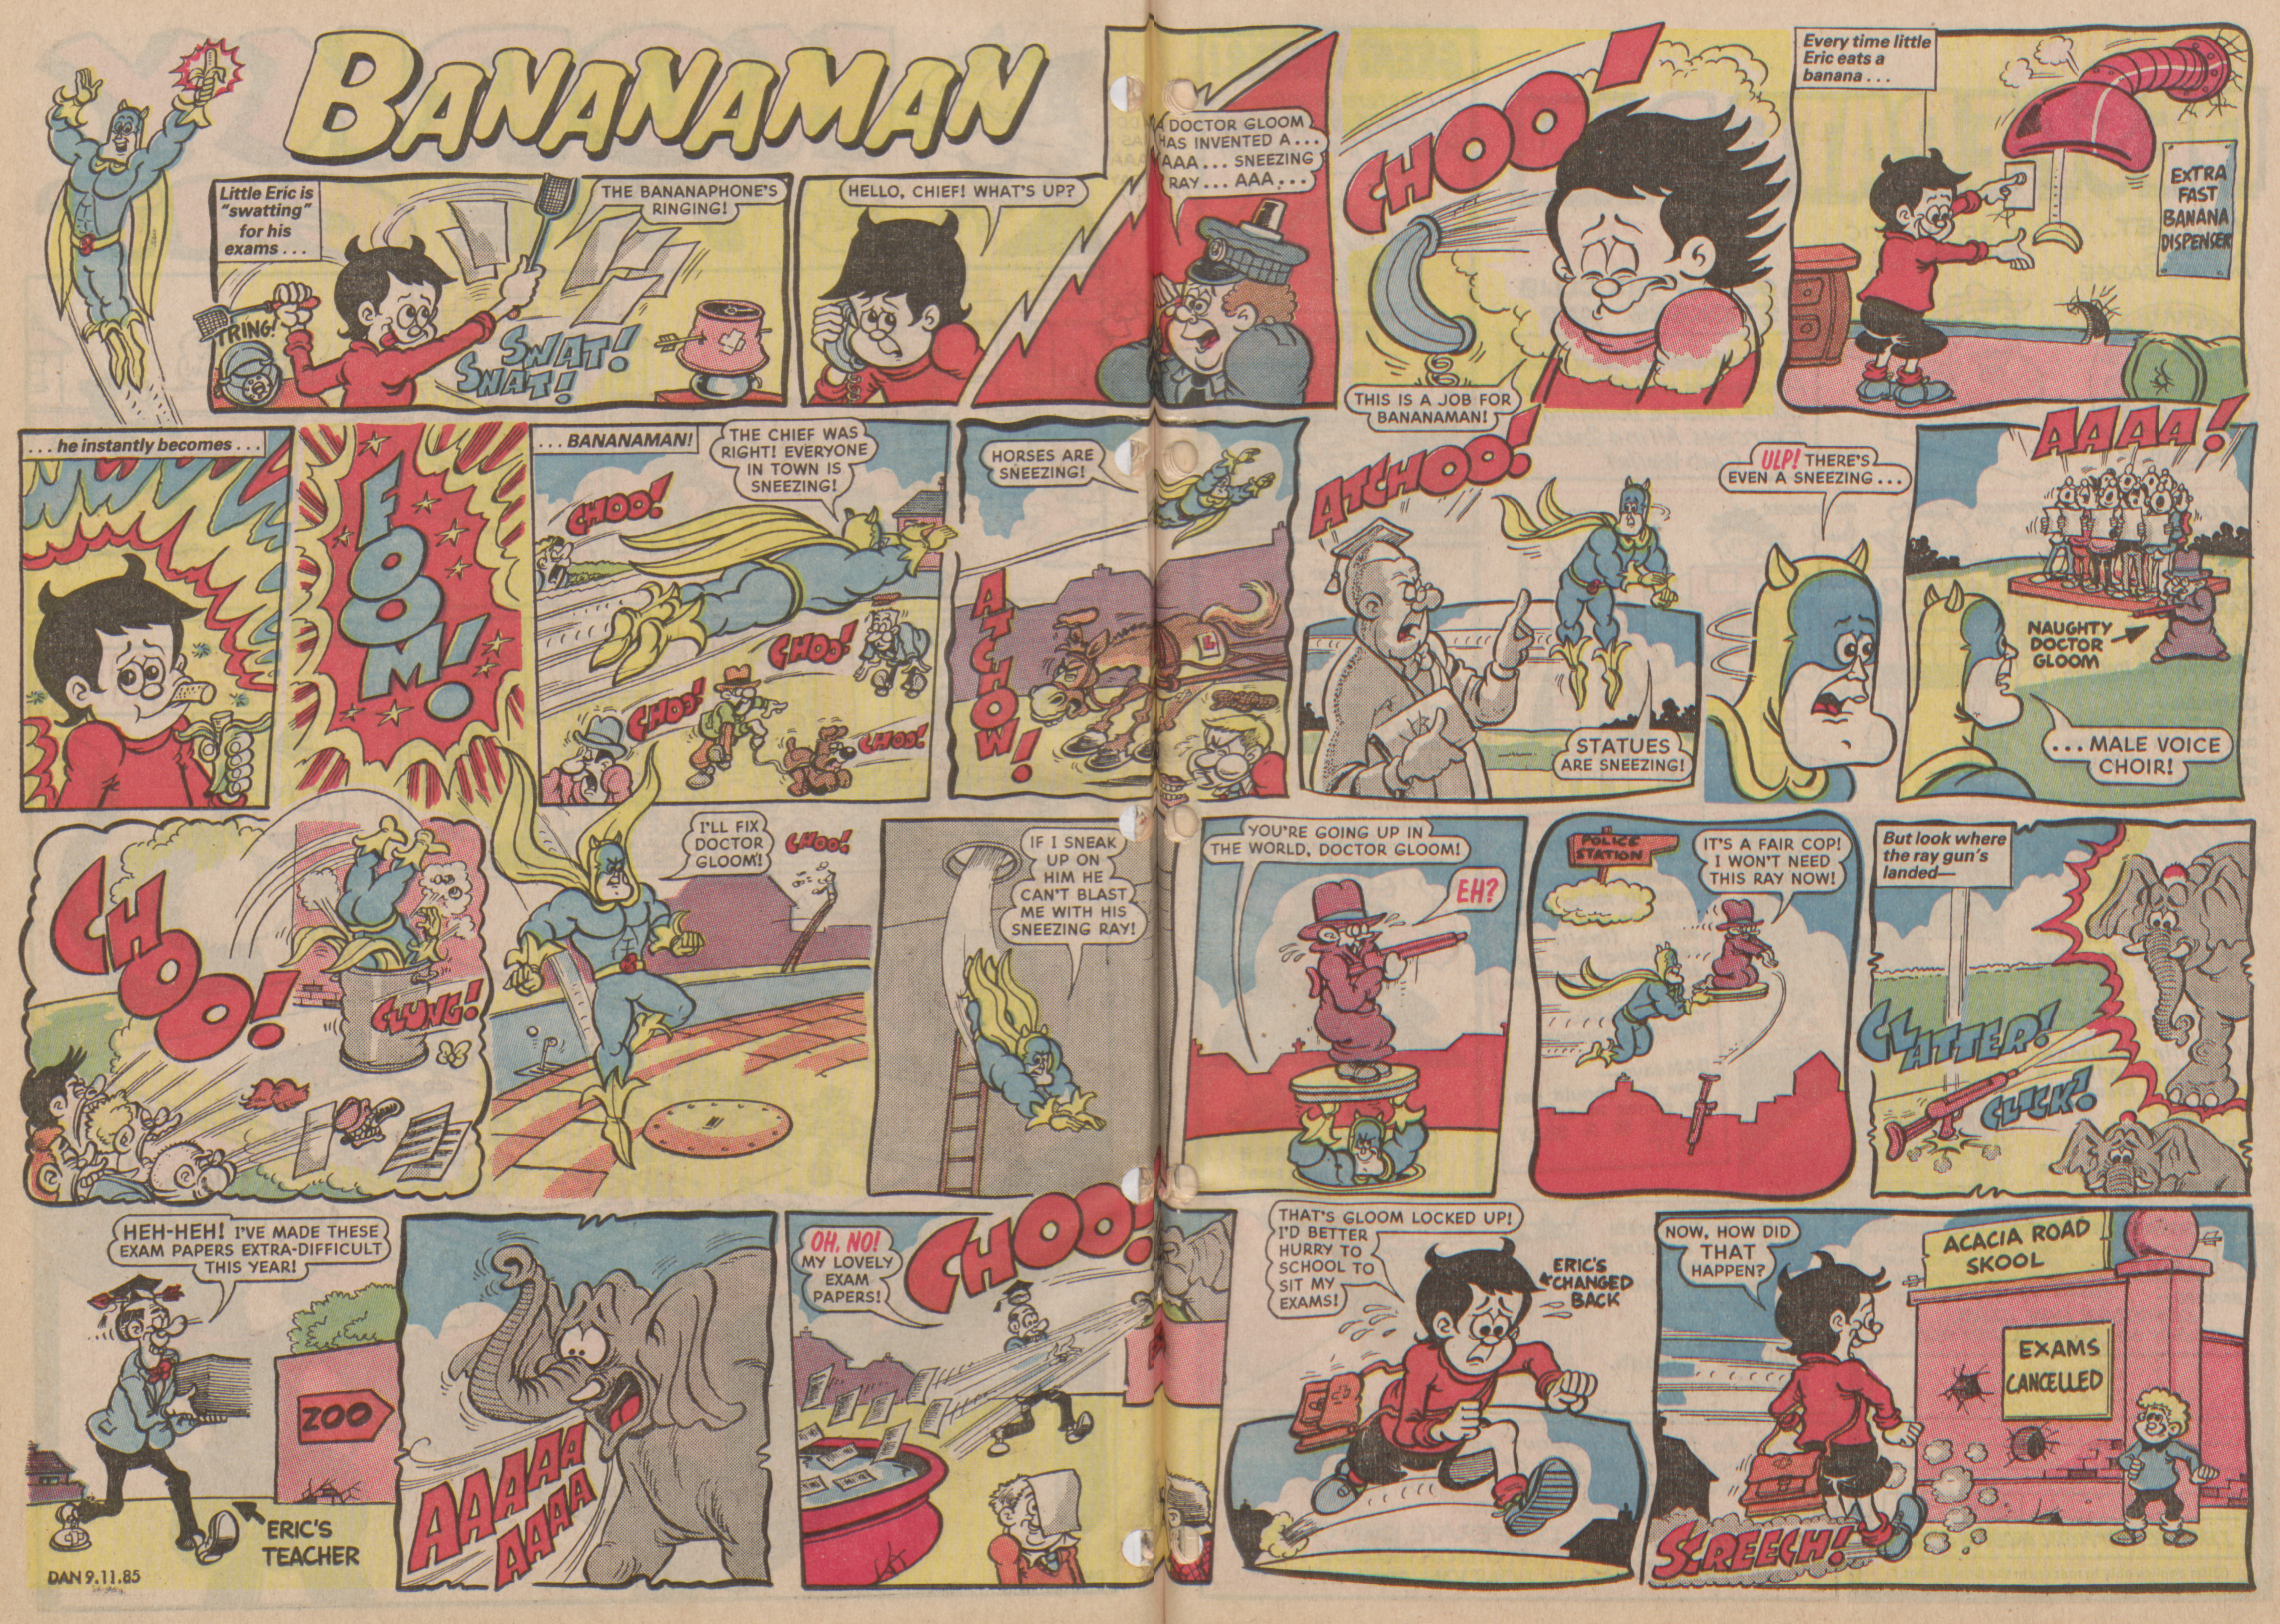 Bananaman - Dandy Issue No. 2294 - November 9th, 1985 - Doctor Gloom and the Sneeze Ray of Doom!